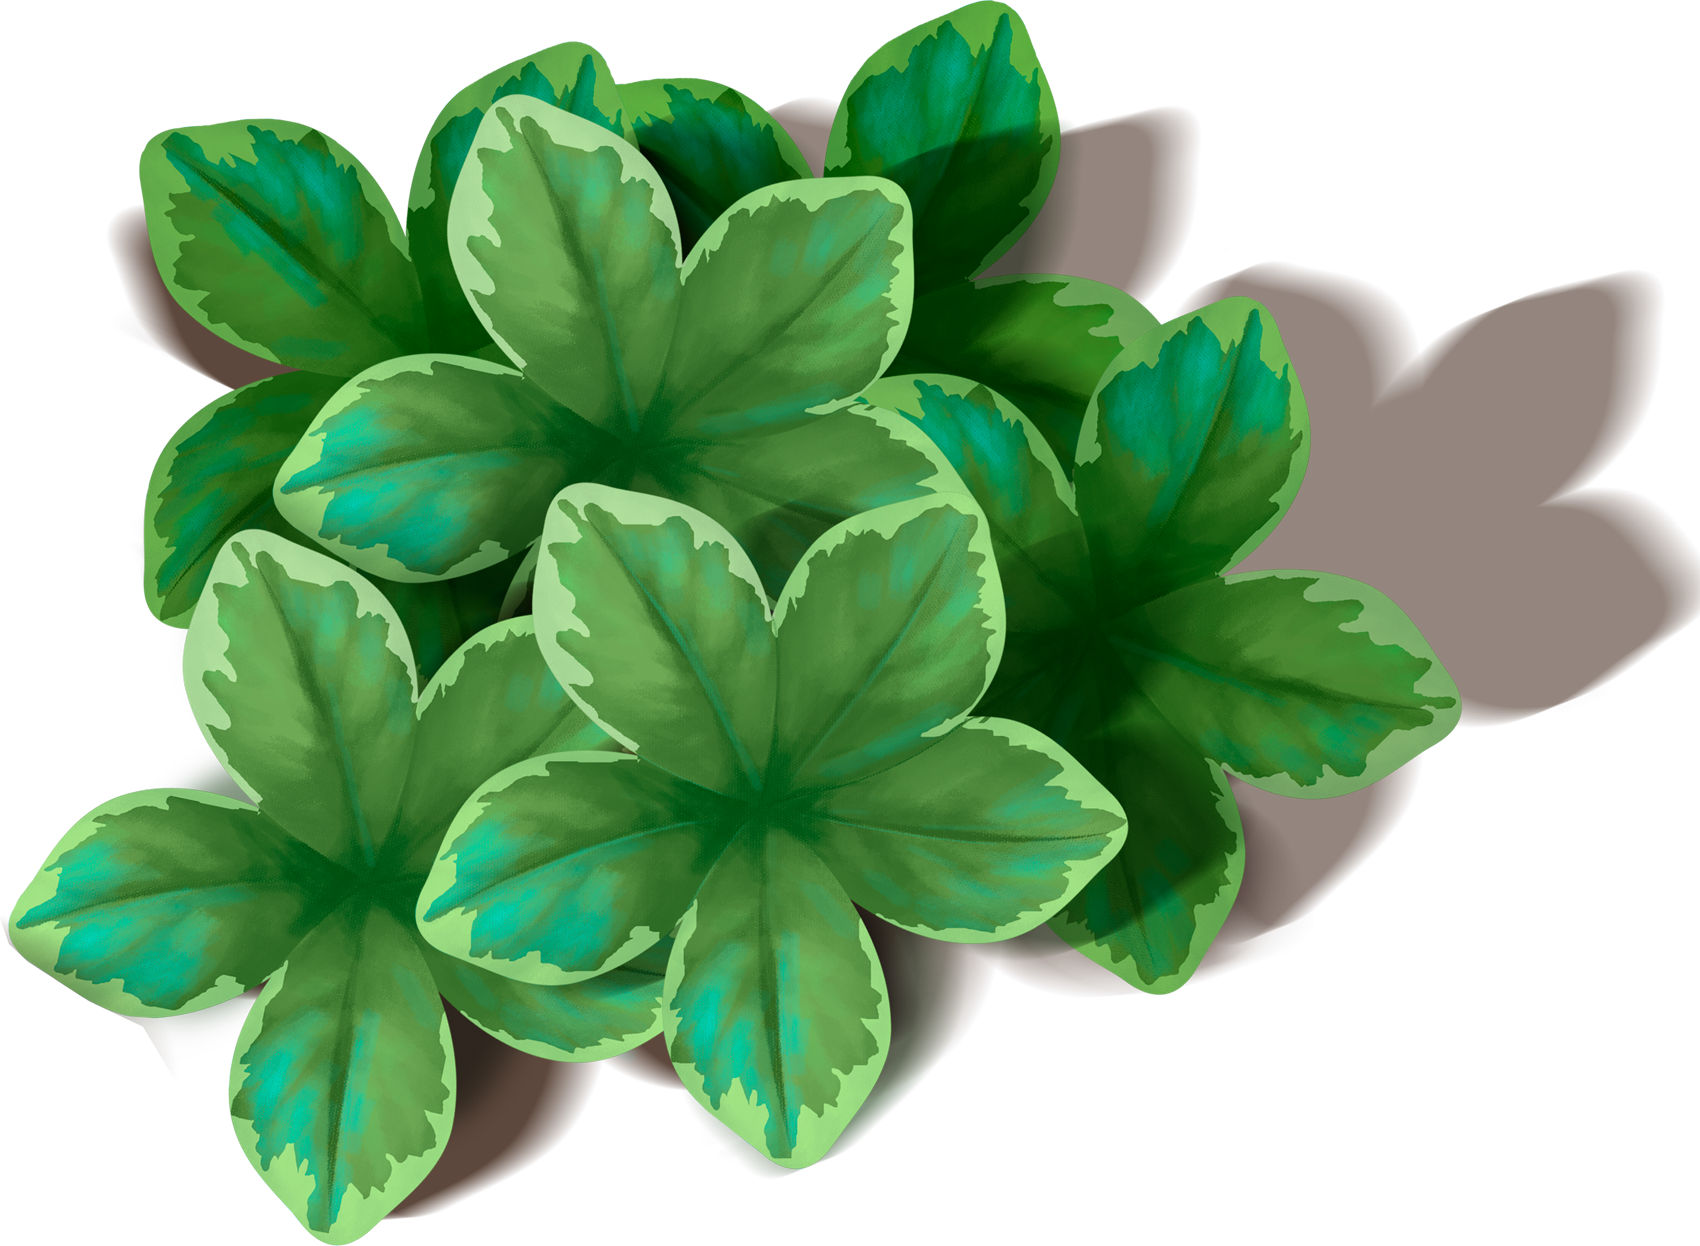 clip transparent library Leaf clipart bunch. Green leaves png picture.